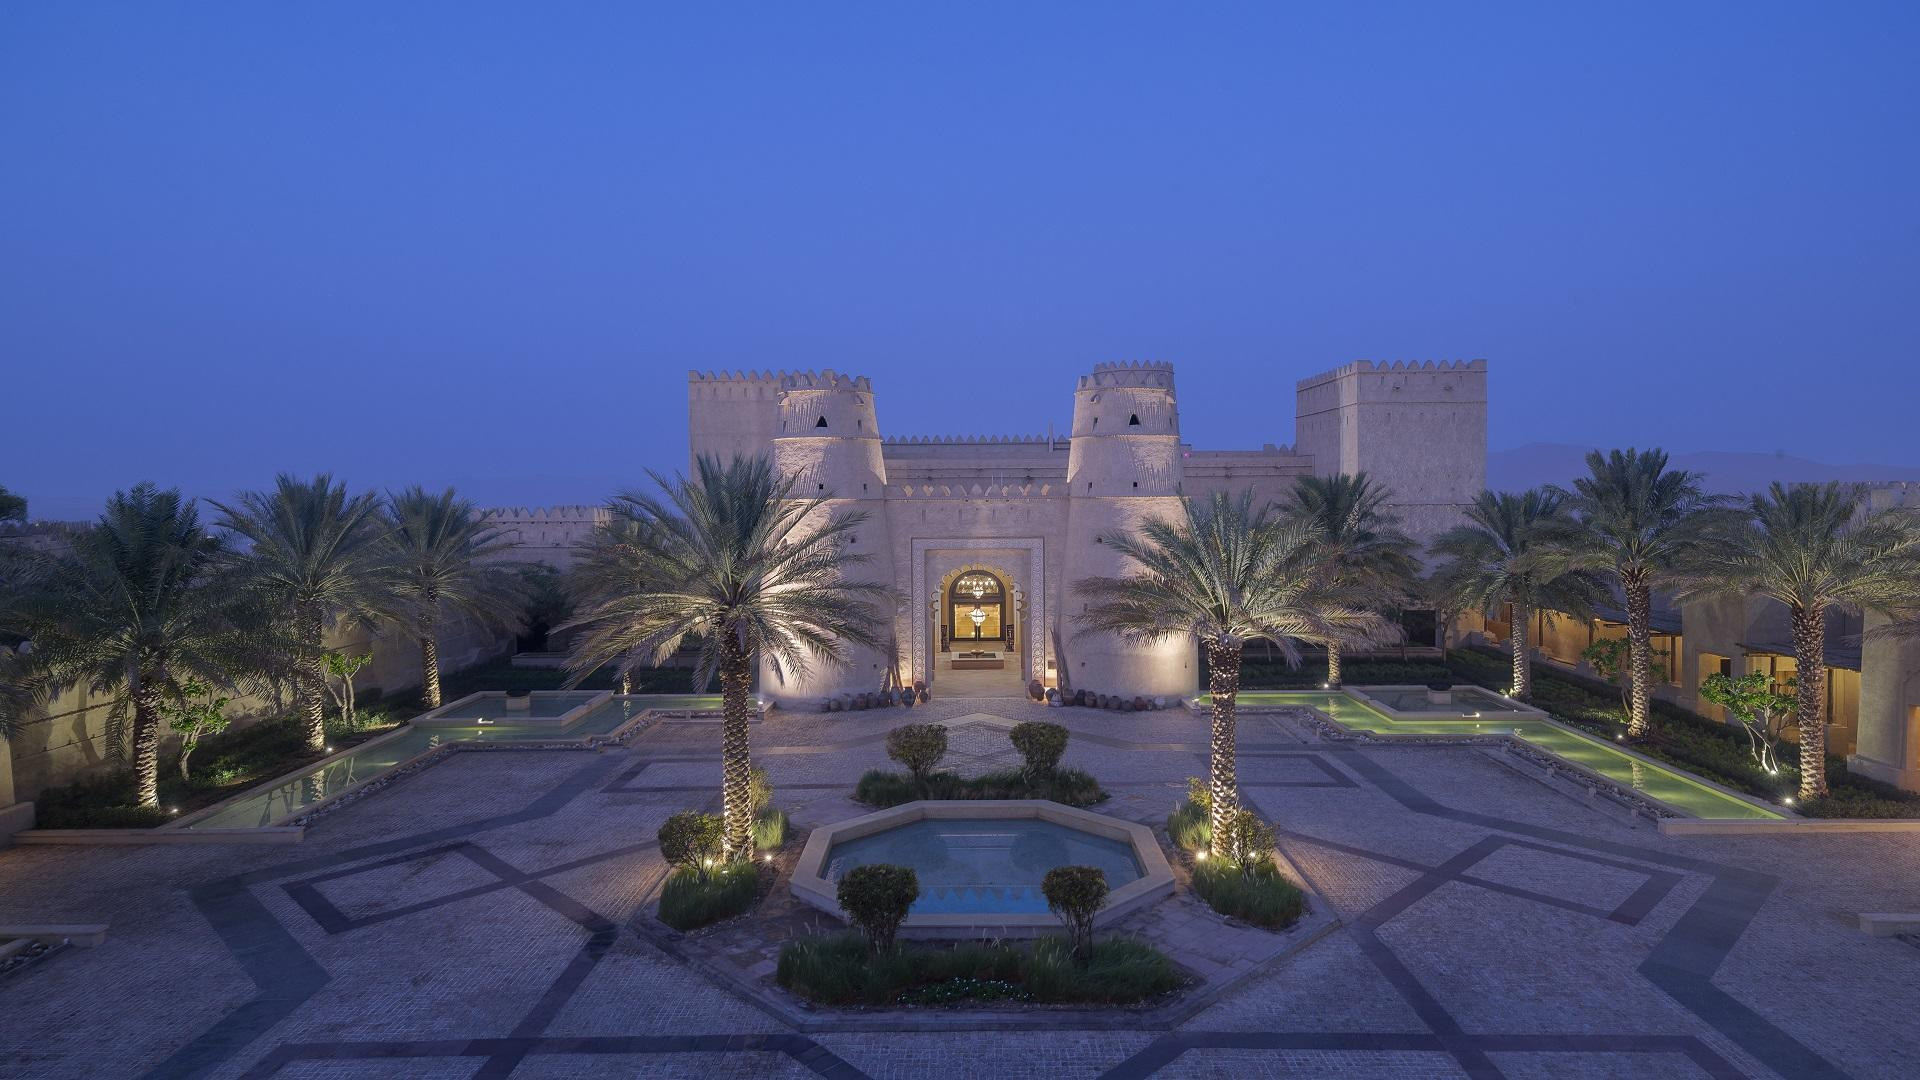 Qasr_Al_Sarab_Desert_ 度假村 比 安纳塔拉 _Exterior_View_Courtyard_Entrance_Twilight